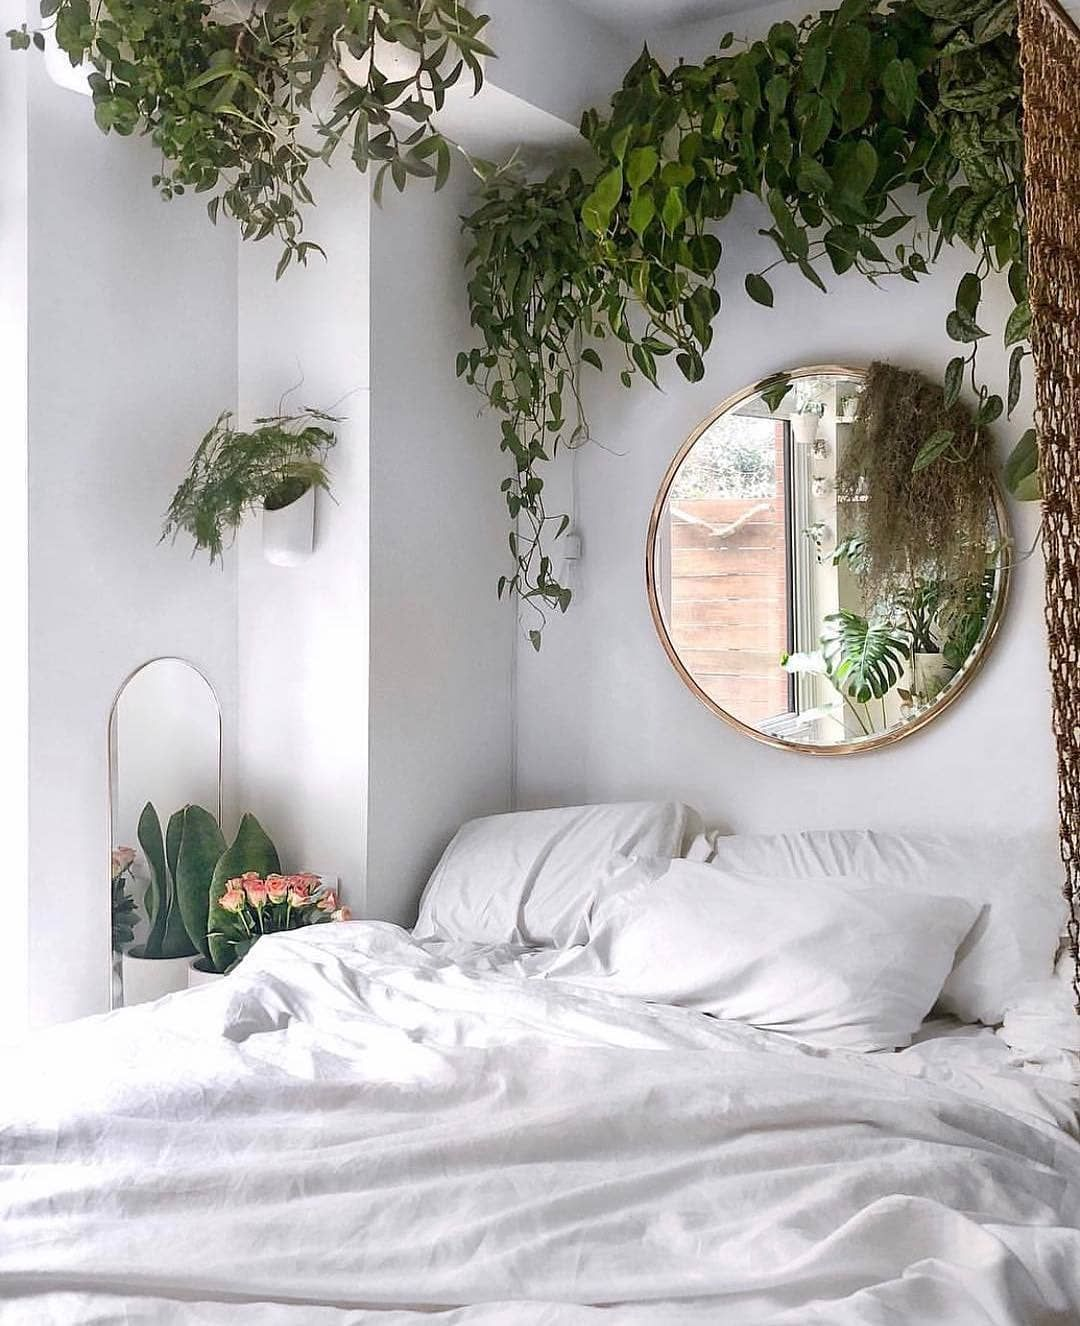 Isn T This The Perfect Houseplant Bedroom Decoration Olivrahomedecor Greenyourspace Plantlovers Plantl Chic Bedroom Design Guest Bedroom Design Bedroom Design